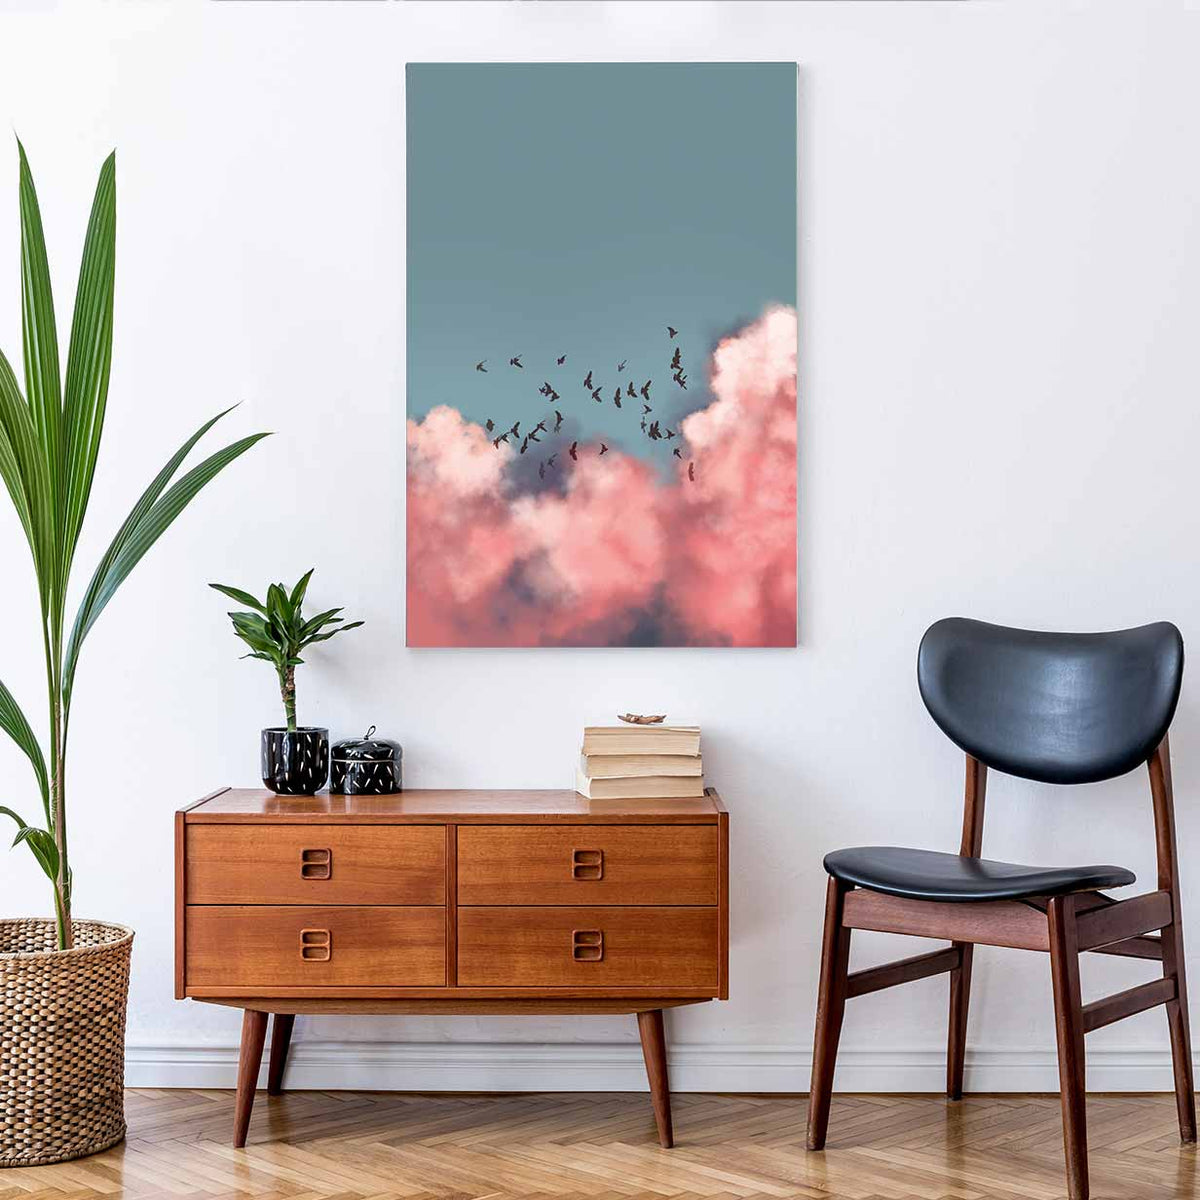 Doves - Canvas Print by Dan Hobday | Art Bloom Canvas Art